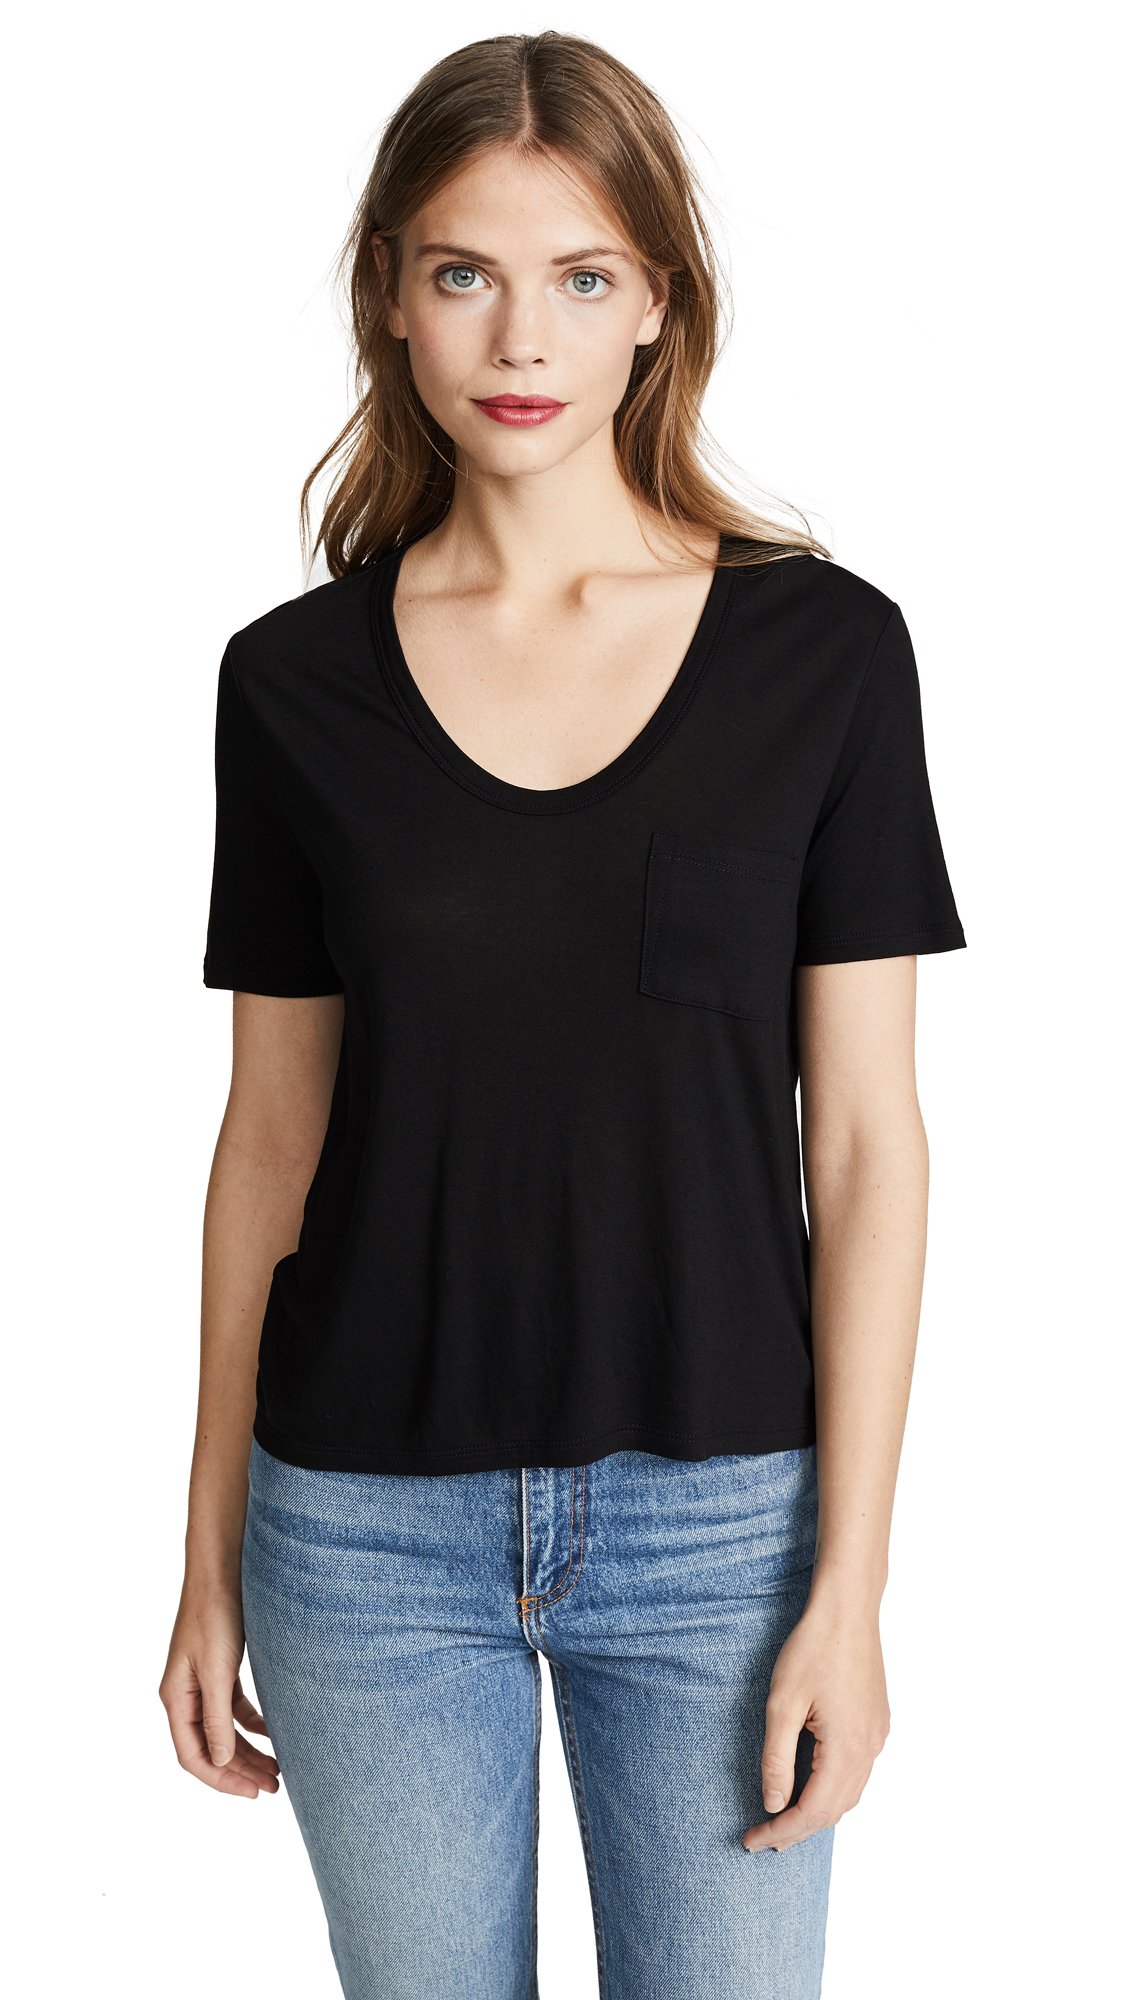 T by Alexander Wang Classic Cropped Tee - Black